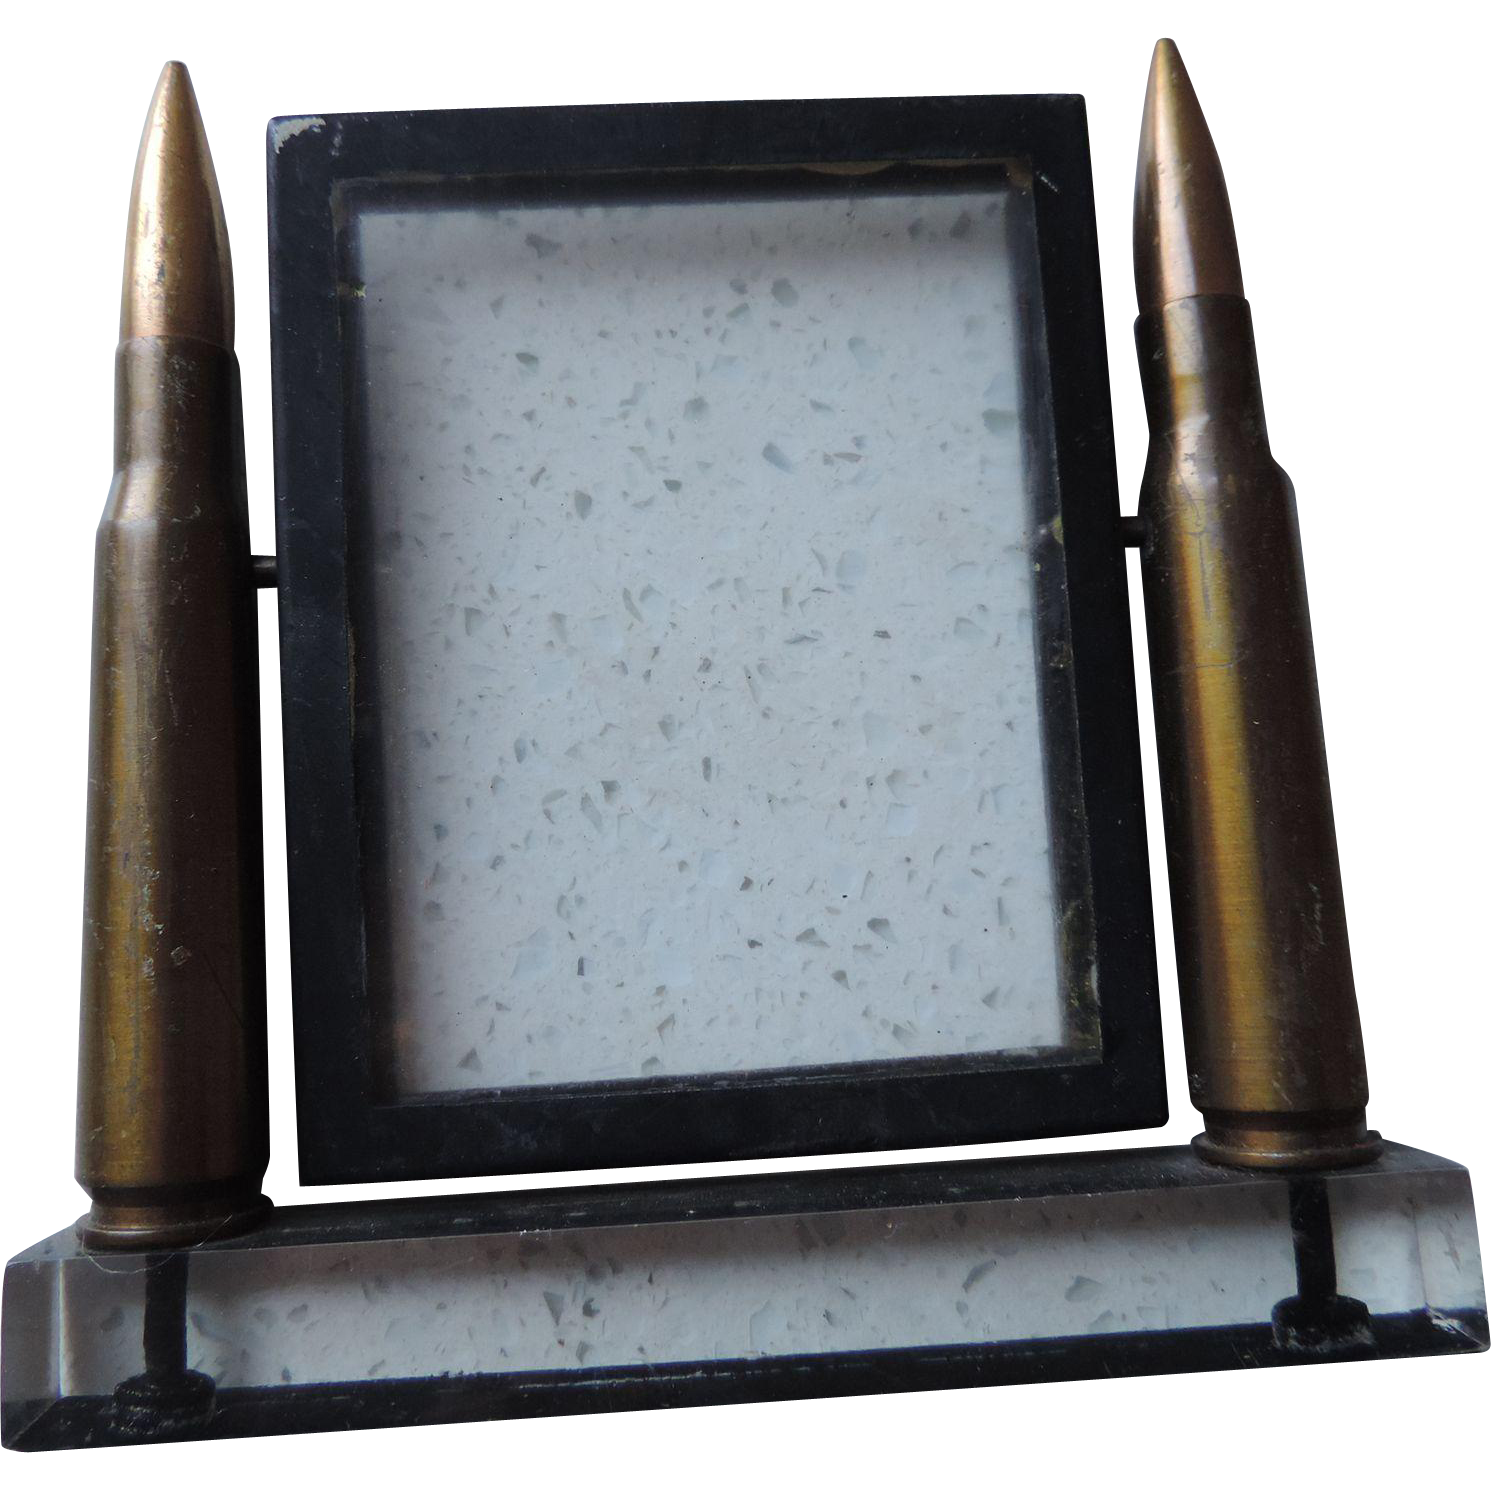 WWII Trench Art, 50 Caliber, Lucite, Glass, Picture Frame